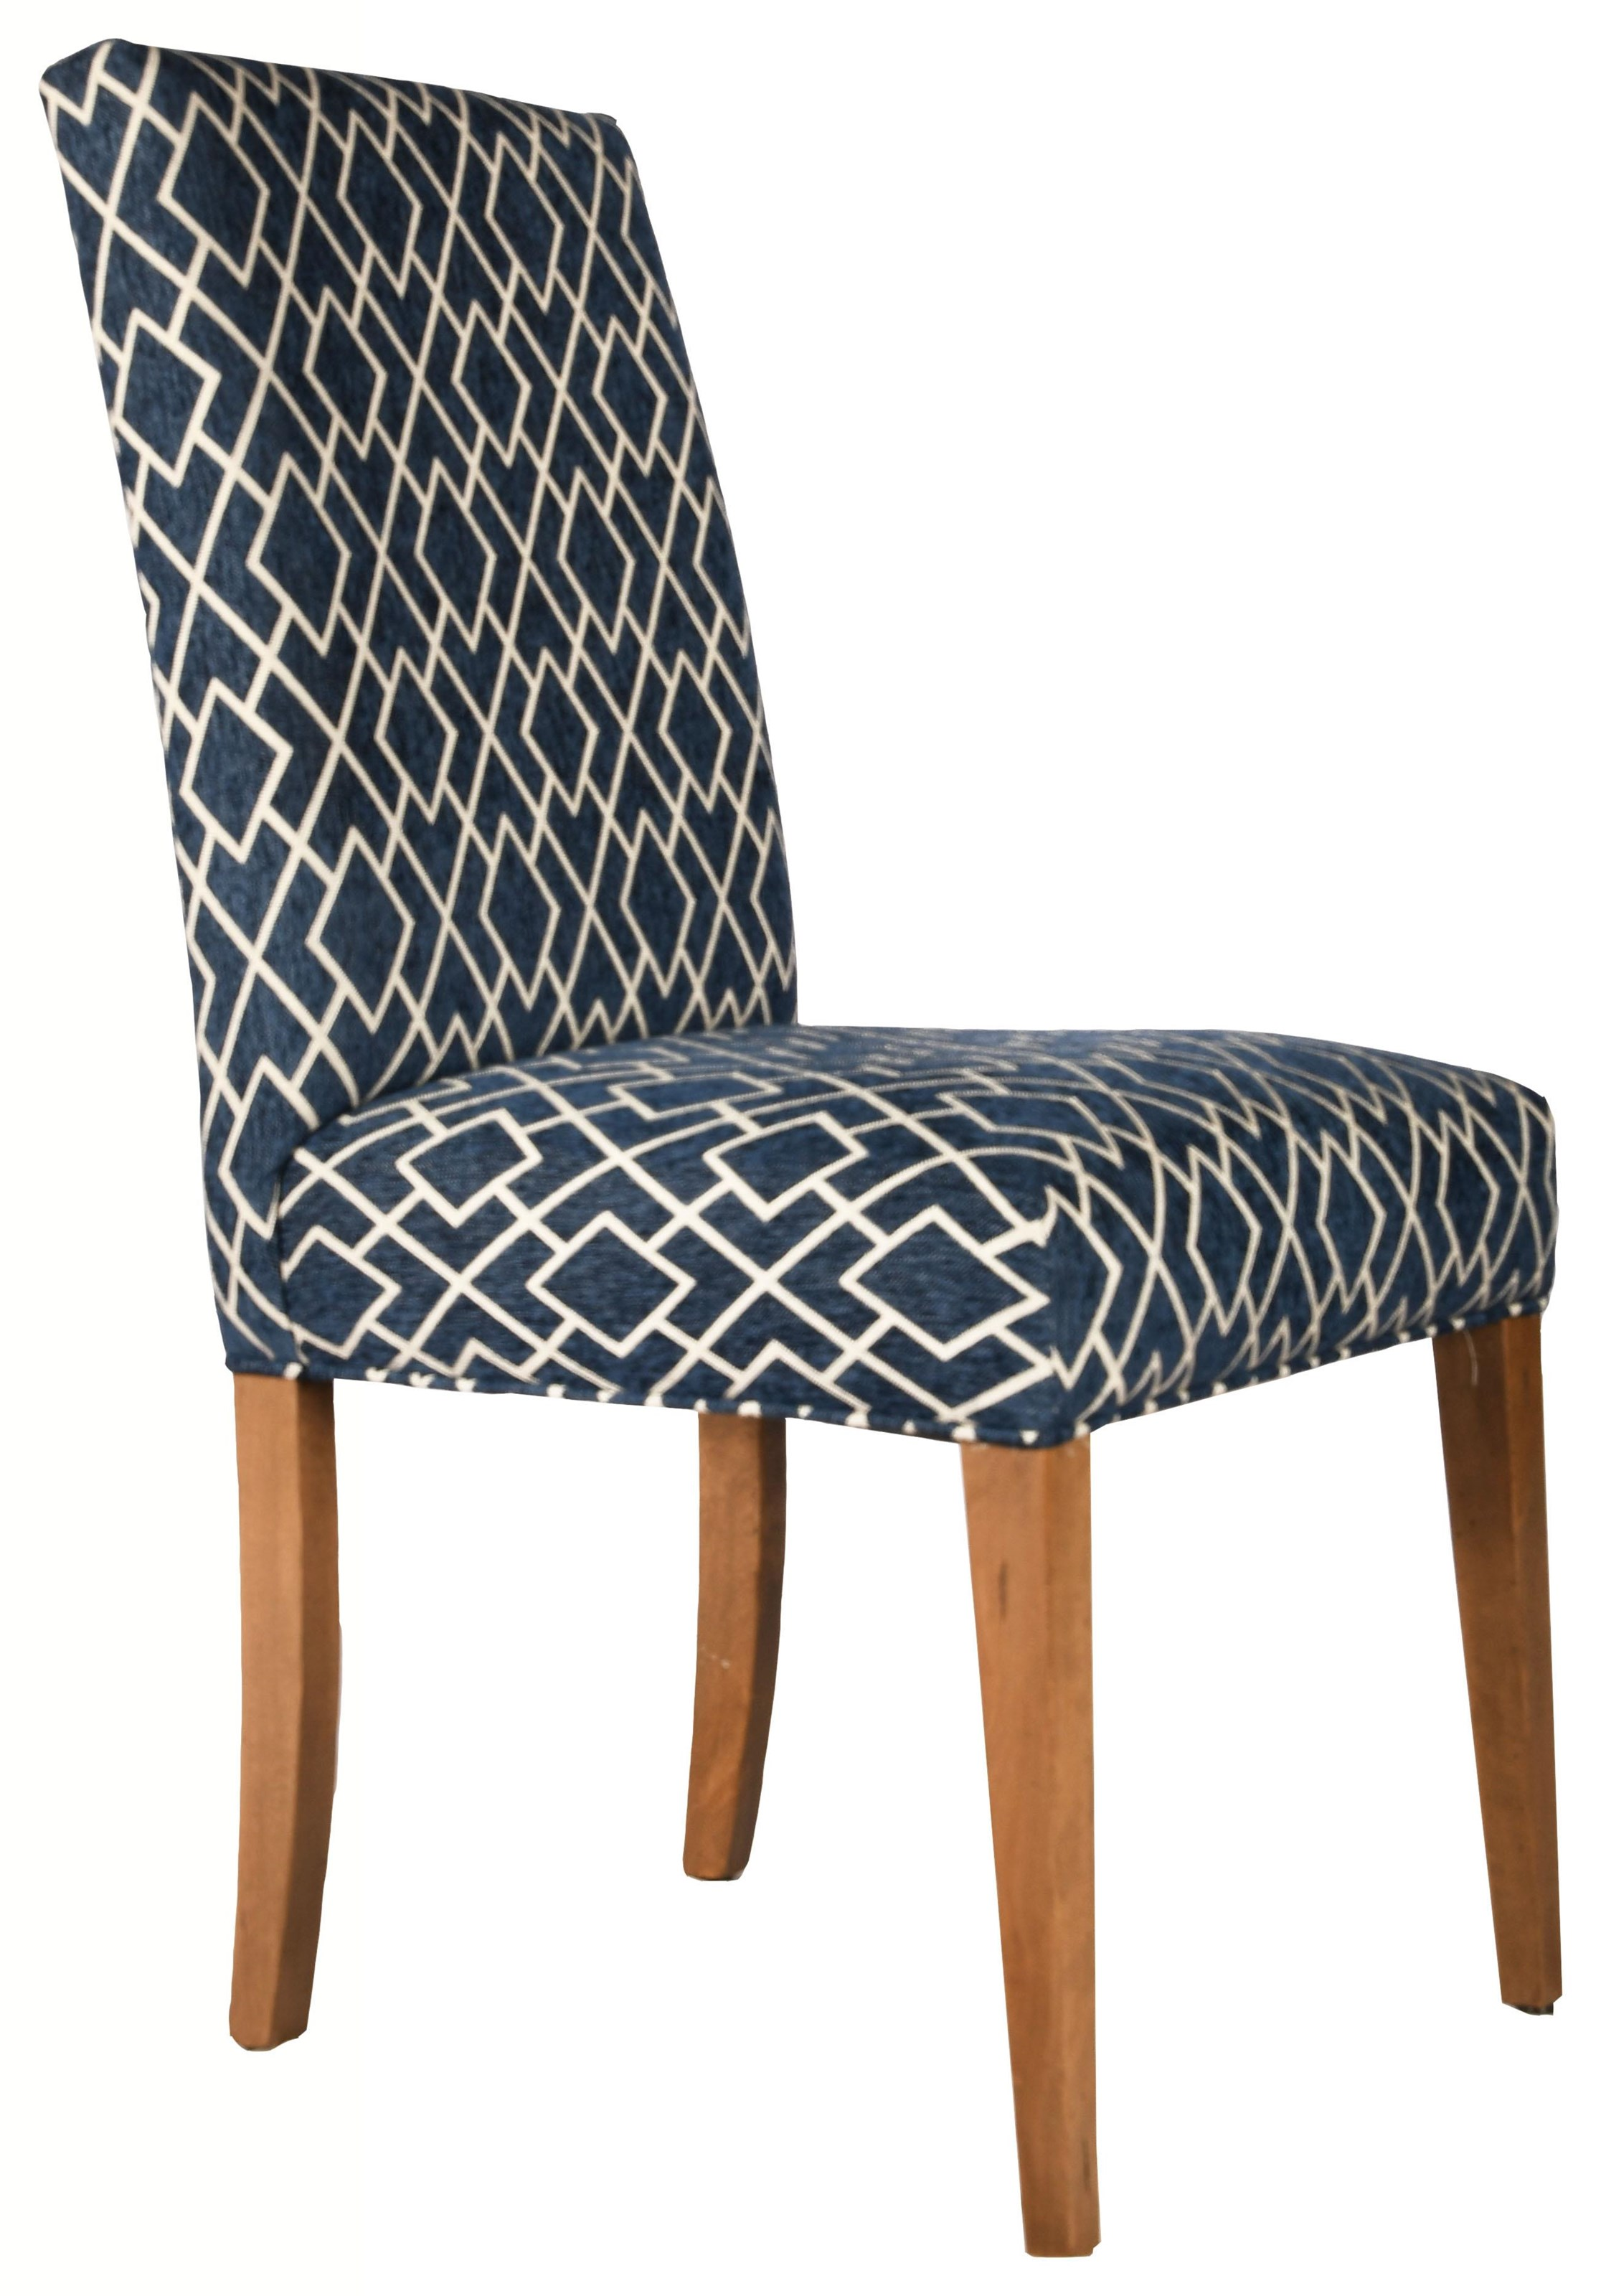 Loft Chair by Canadel at Bennett's Furniture and Mattresses